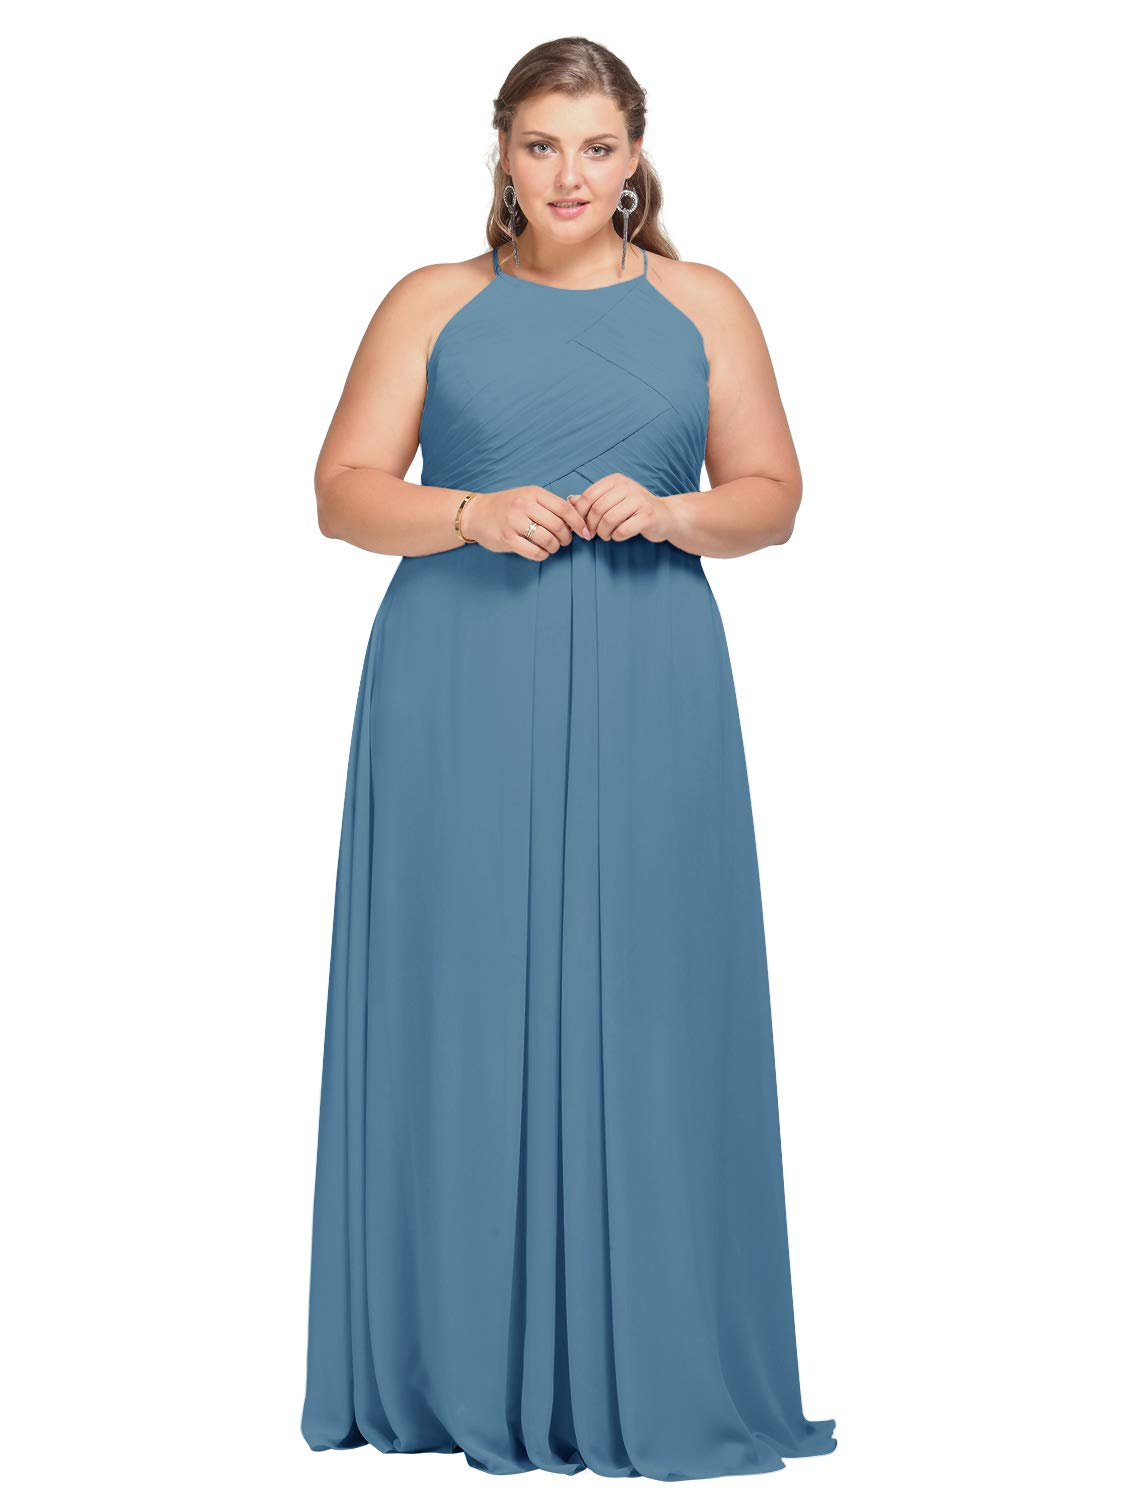 9a86baa3fc830 AW Chiffon Bridesmaid Dress for Women Evening Gowns Long Formal Prom  Dresses, Dusty Blue, US14